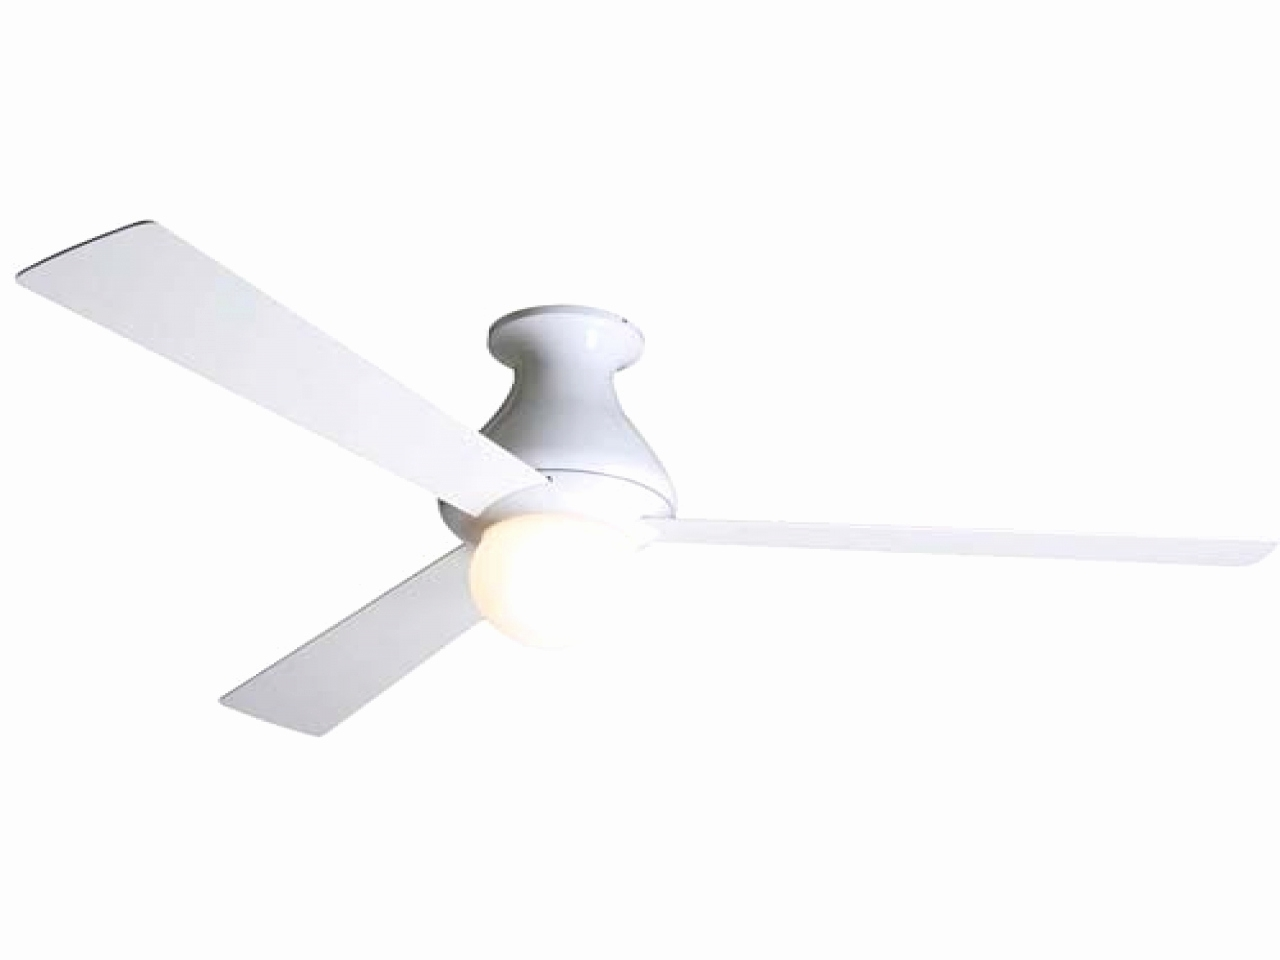 White Ceiling Fan With Light And Remote Unique Modern White Ceiling Inside 2019 Kmart Outdoor Ceiling Fans (View 16 of 20)